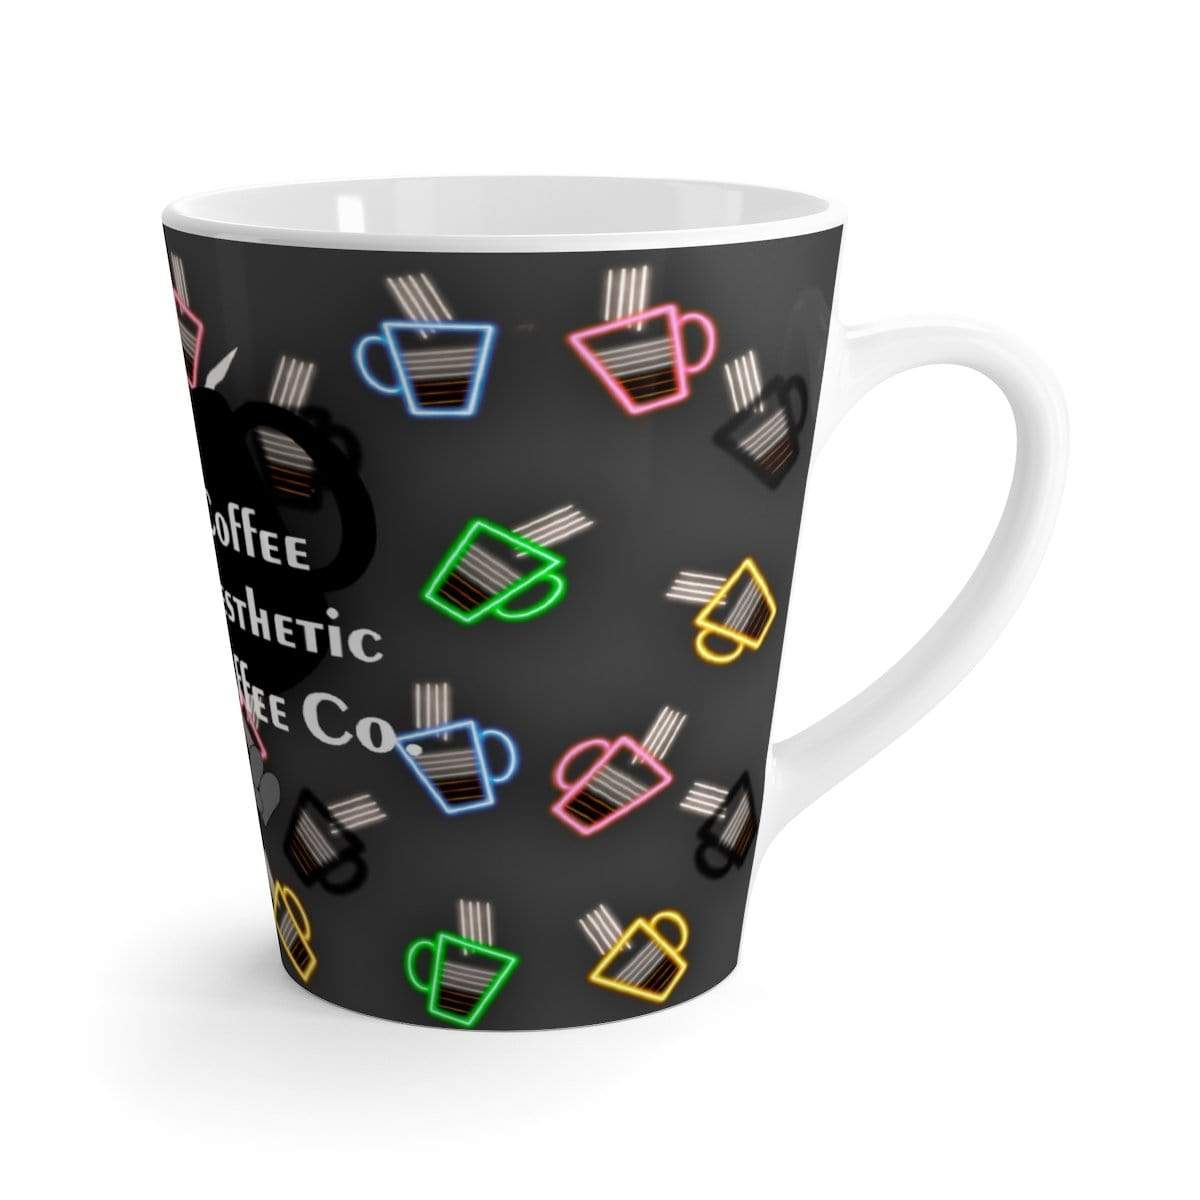 Printify Mug 12oz Coffee-Aesthetic.com - Big 4am Neon Latte mug